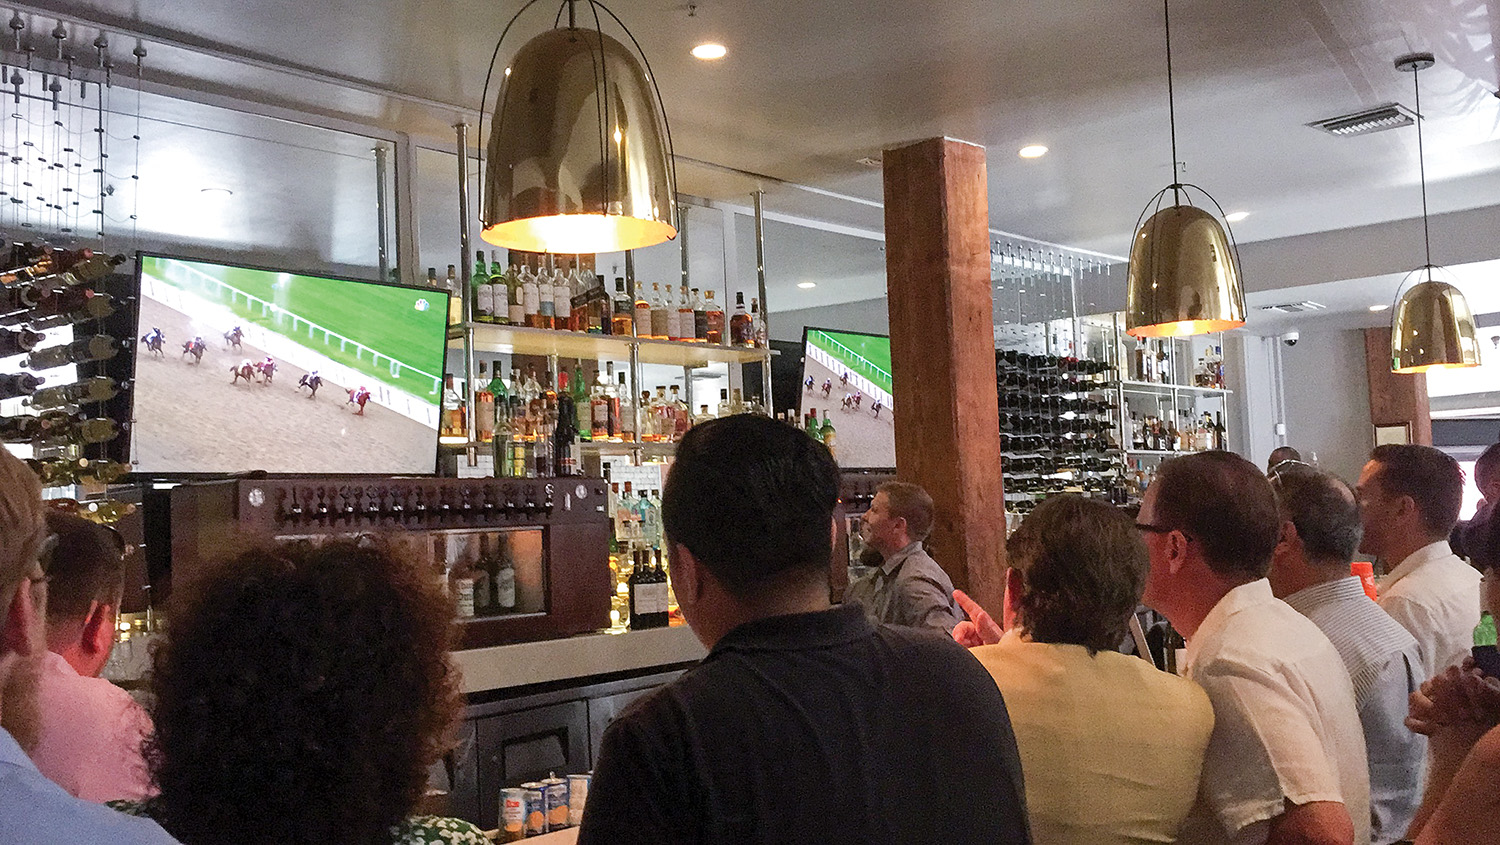 Turn Services friends and employees watch the Belmont Stakes at NOSH in New Orleans, waiting to see if Justify will win the race and the Triple Crown. (Photo by Jen McCormack)